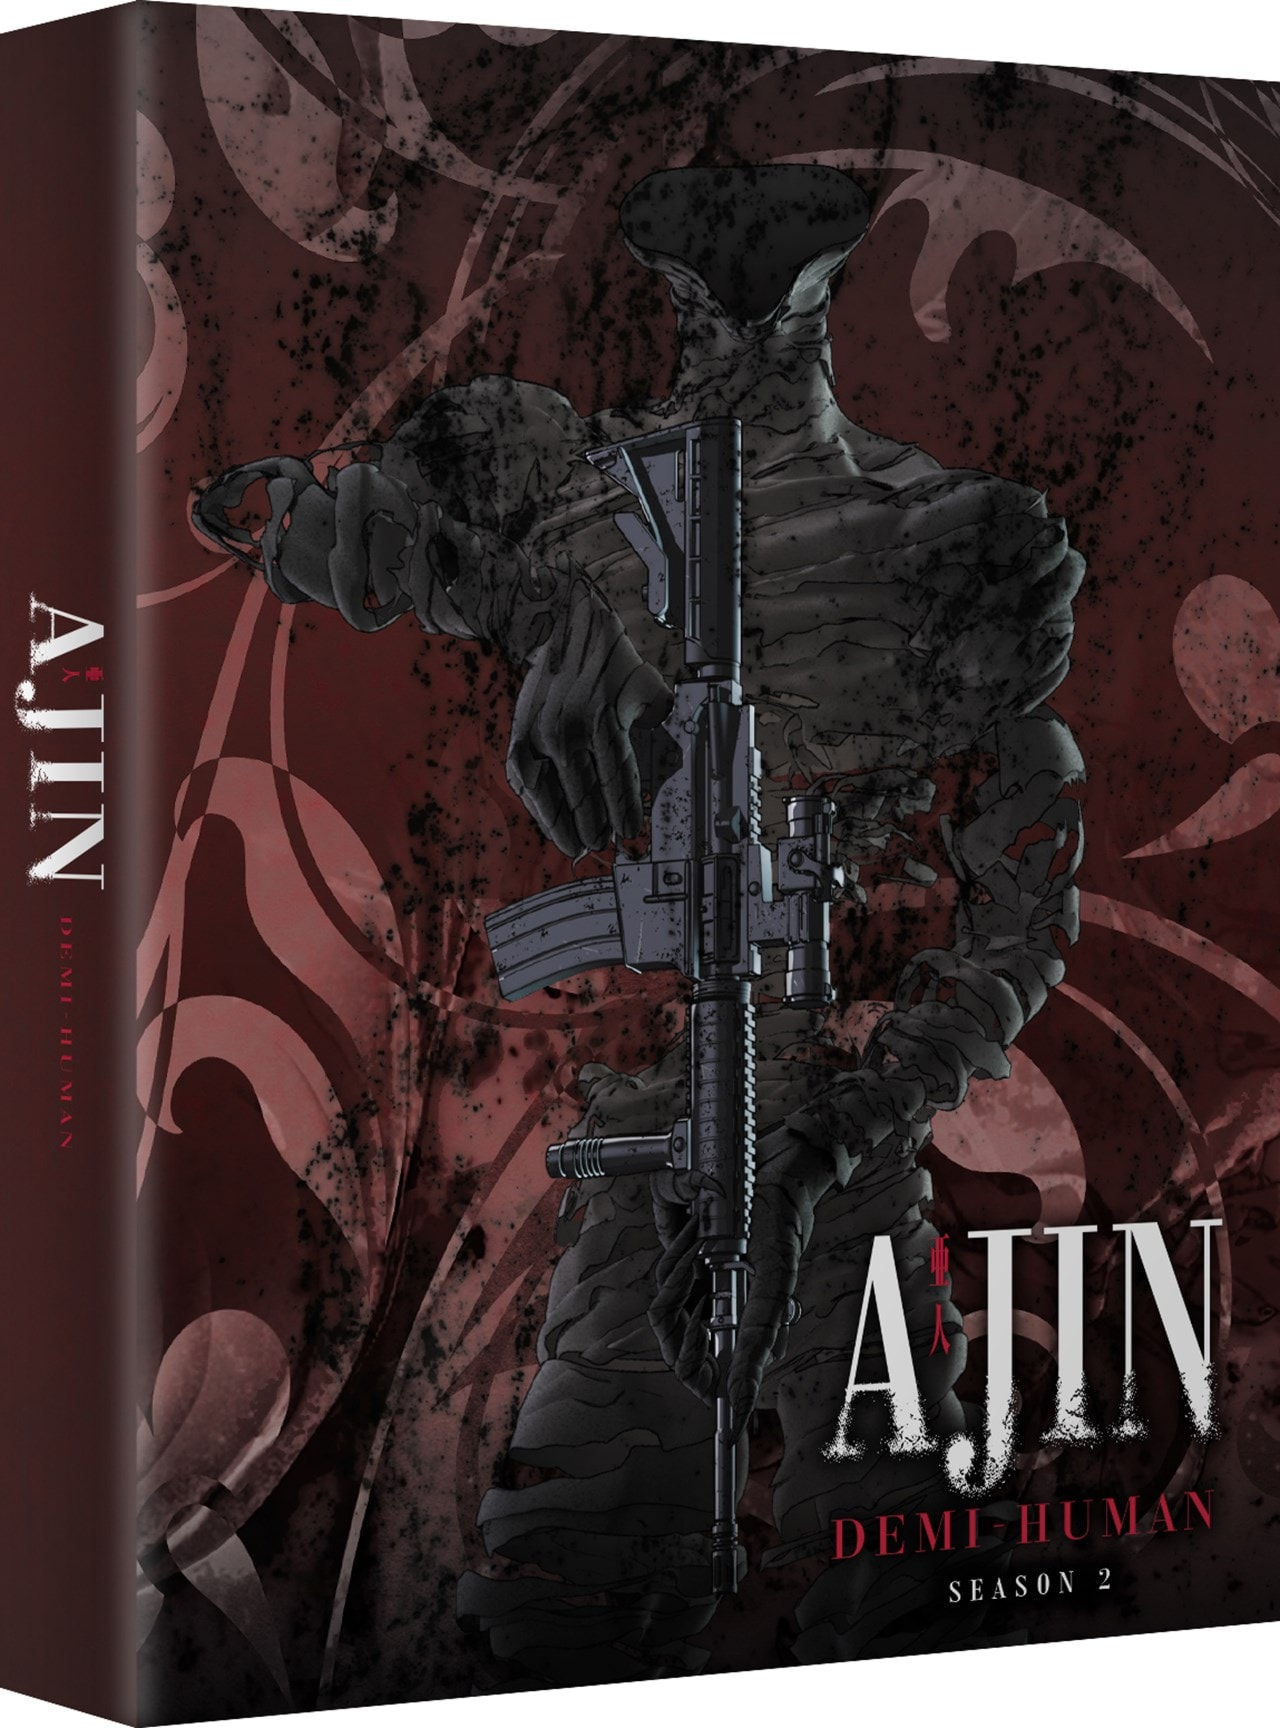 Ajin: Demi-human - Season 2 Limited Collector's Edition - 2